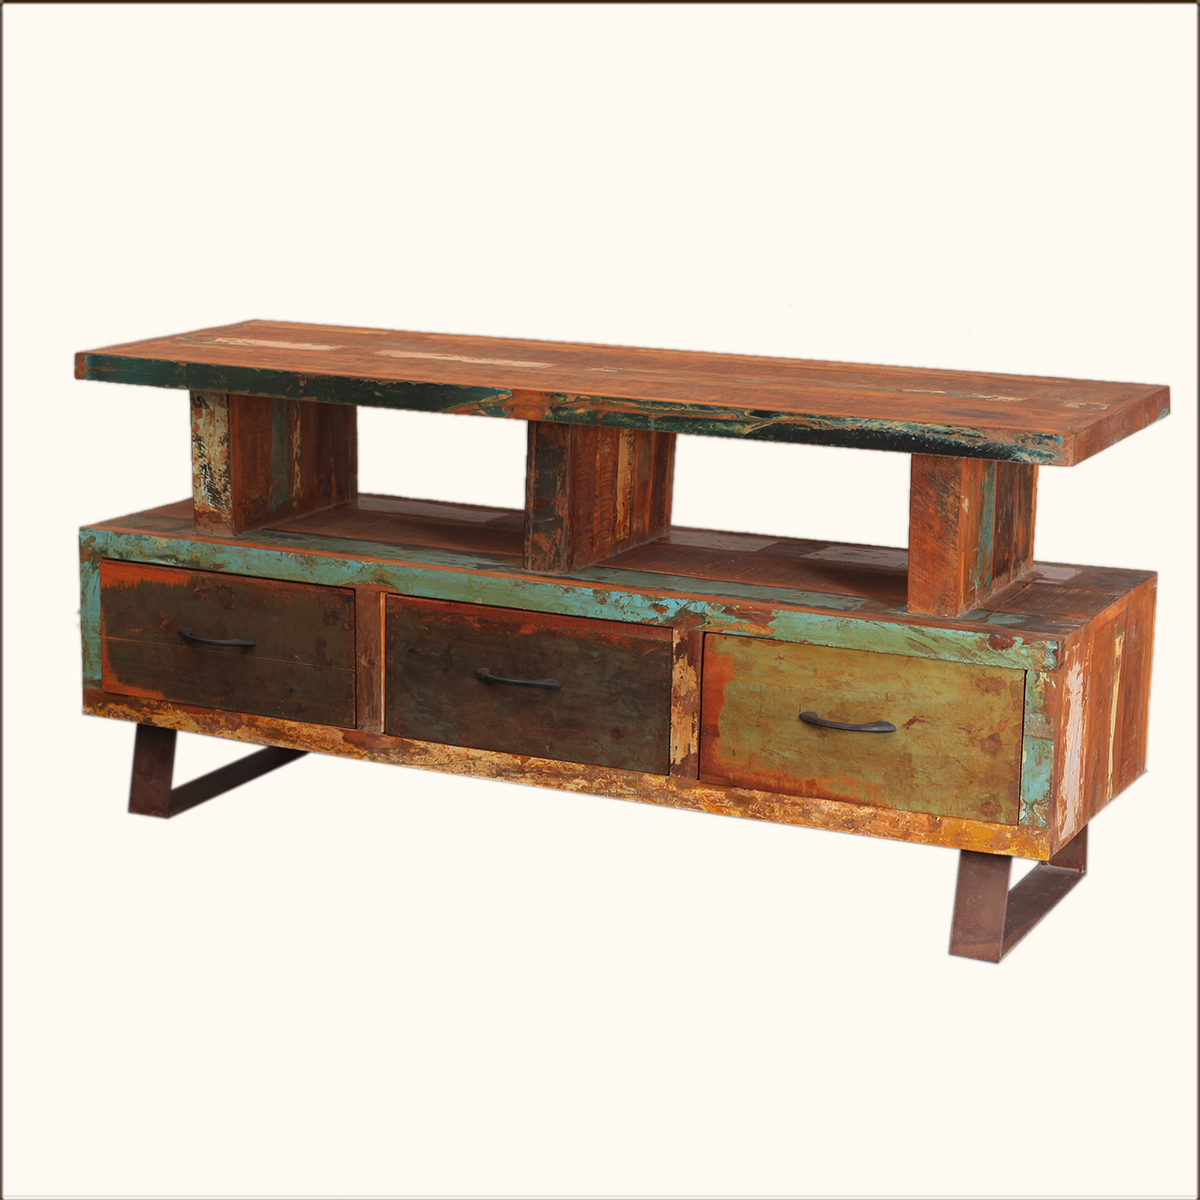 Wood Media Console Furniture ~ Distressed media console rustic reclaimed wood iron tv